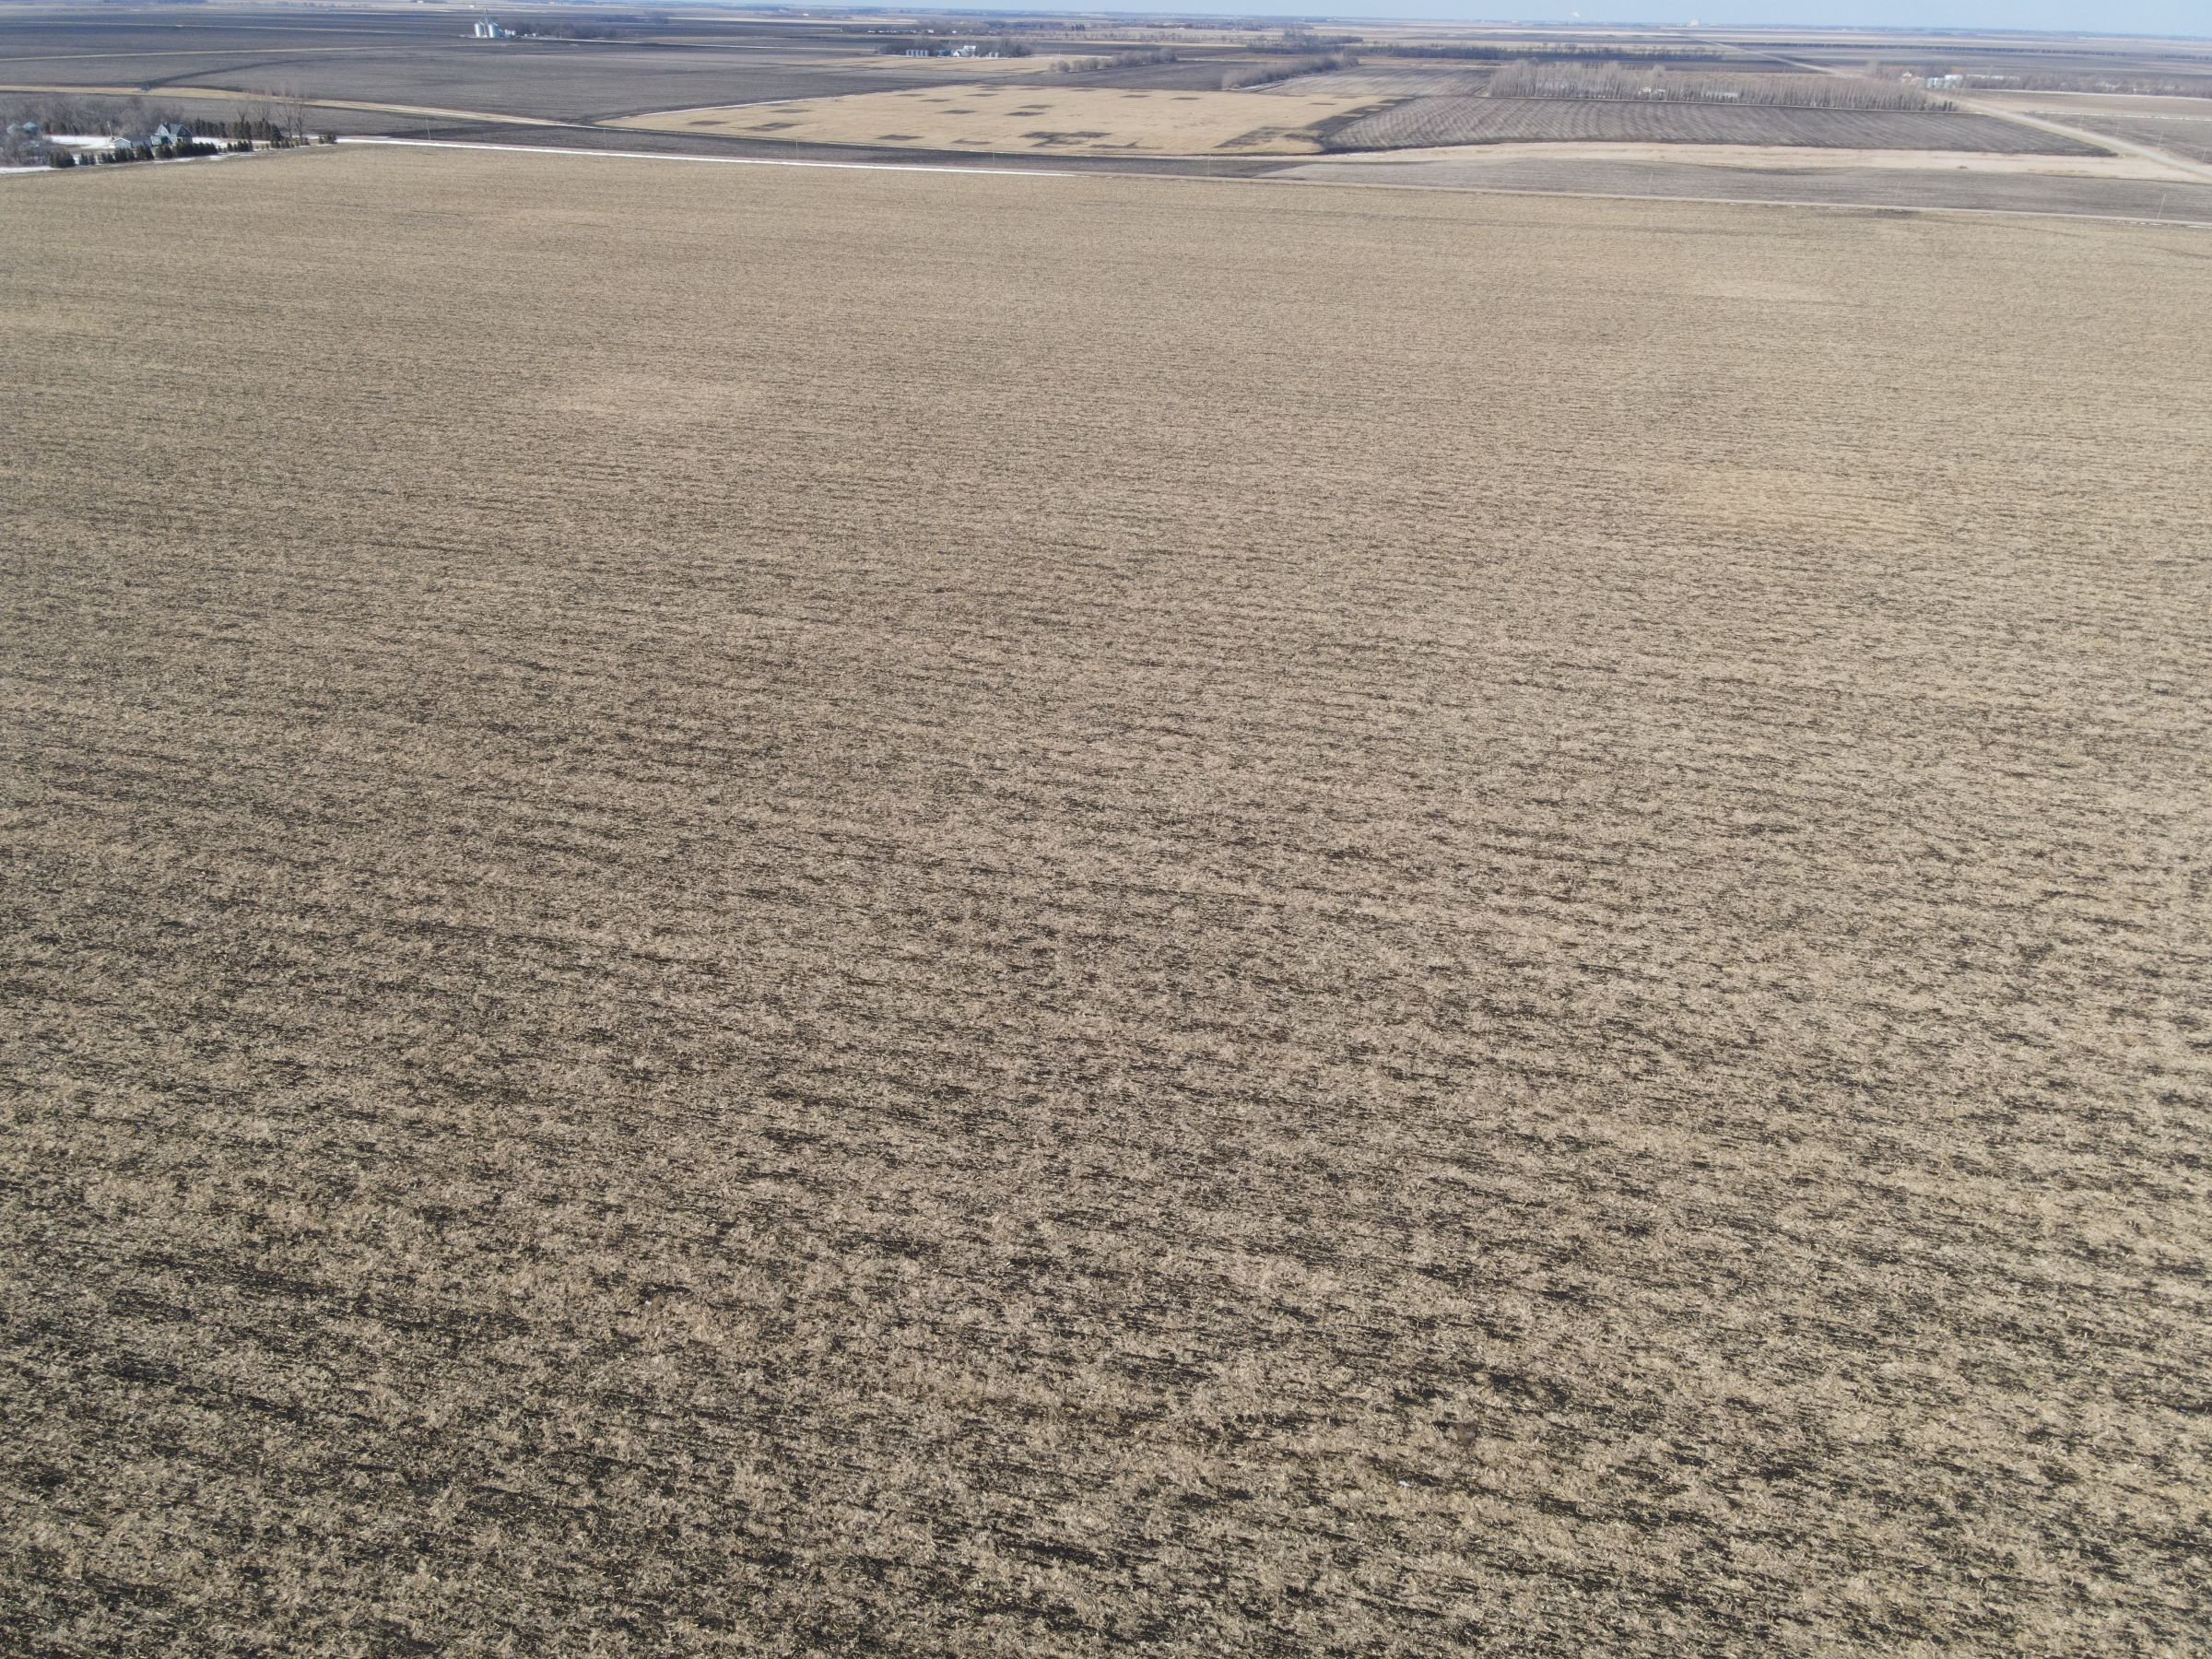 auctions-cass-county-north-dakota-157-acres-listing-number-15592-1-2021-06-16-181313.JPG